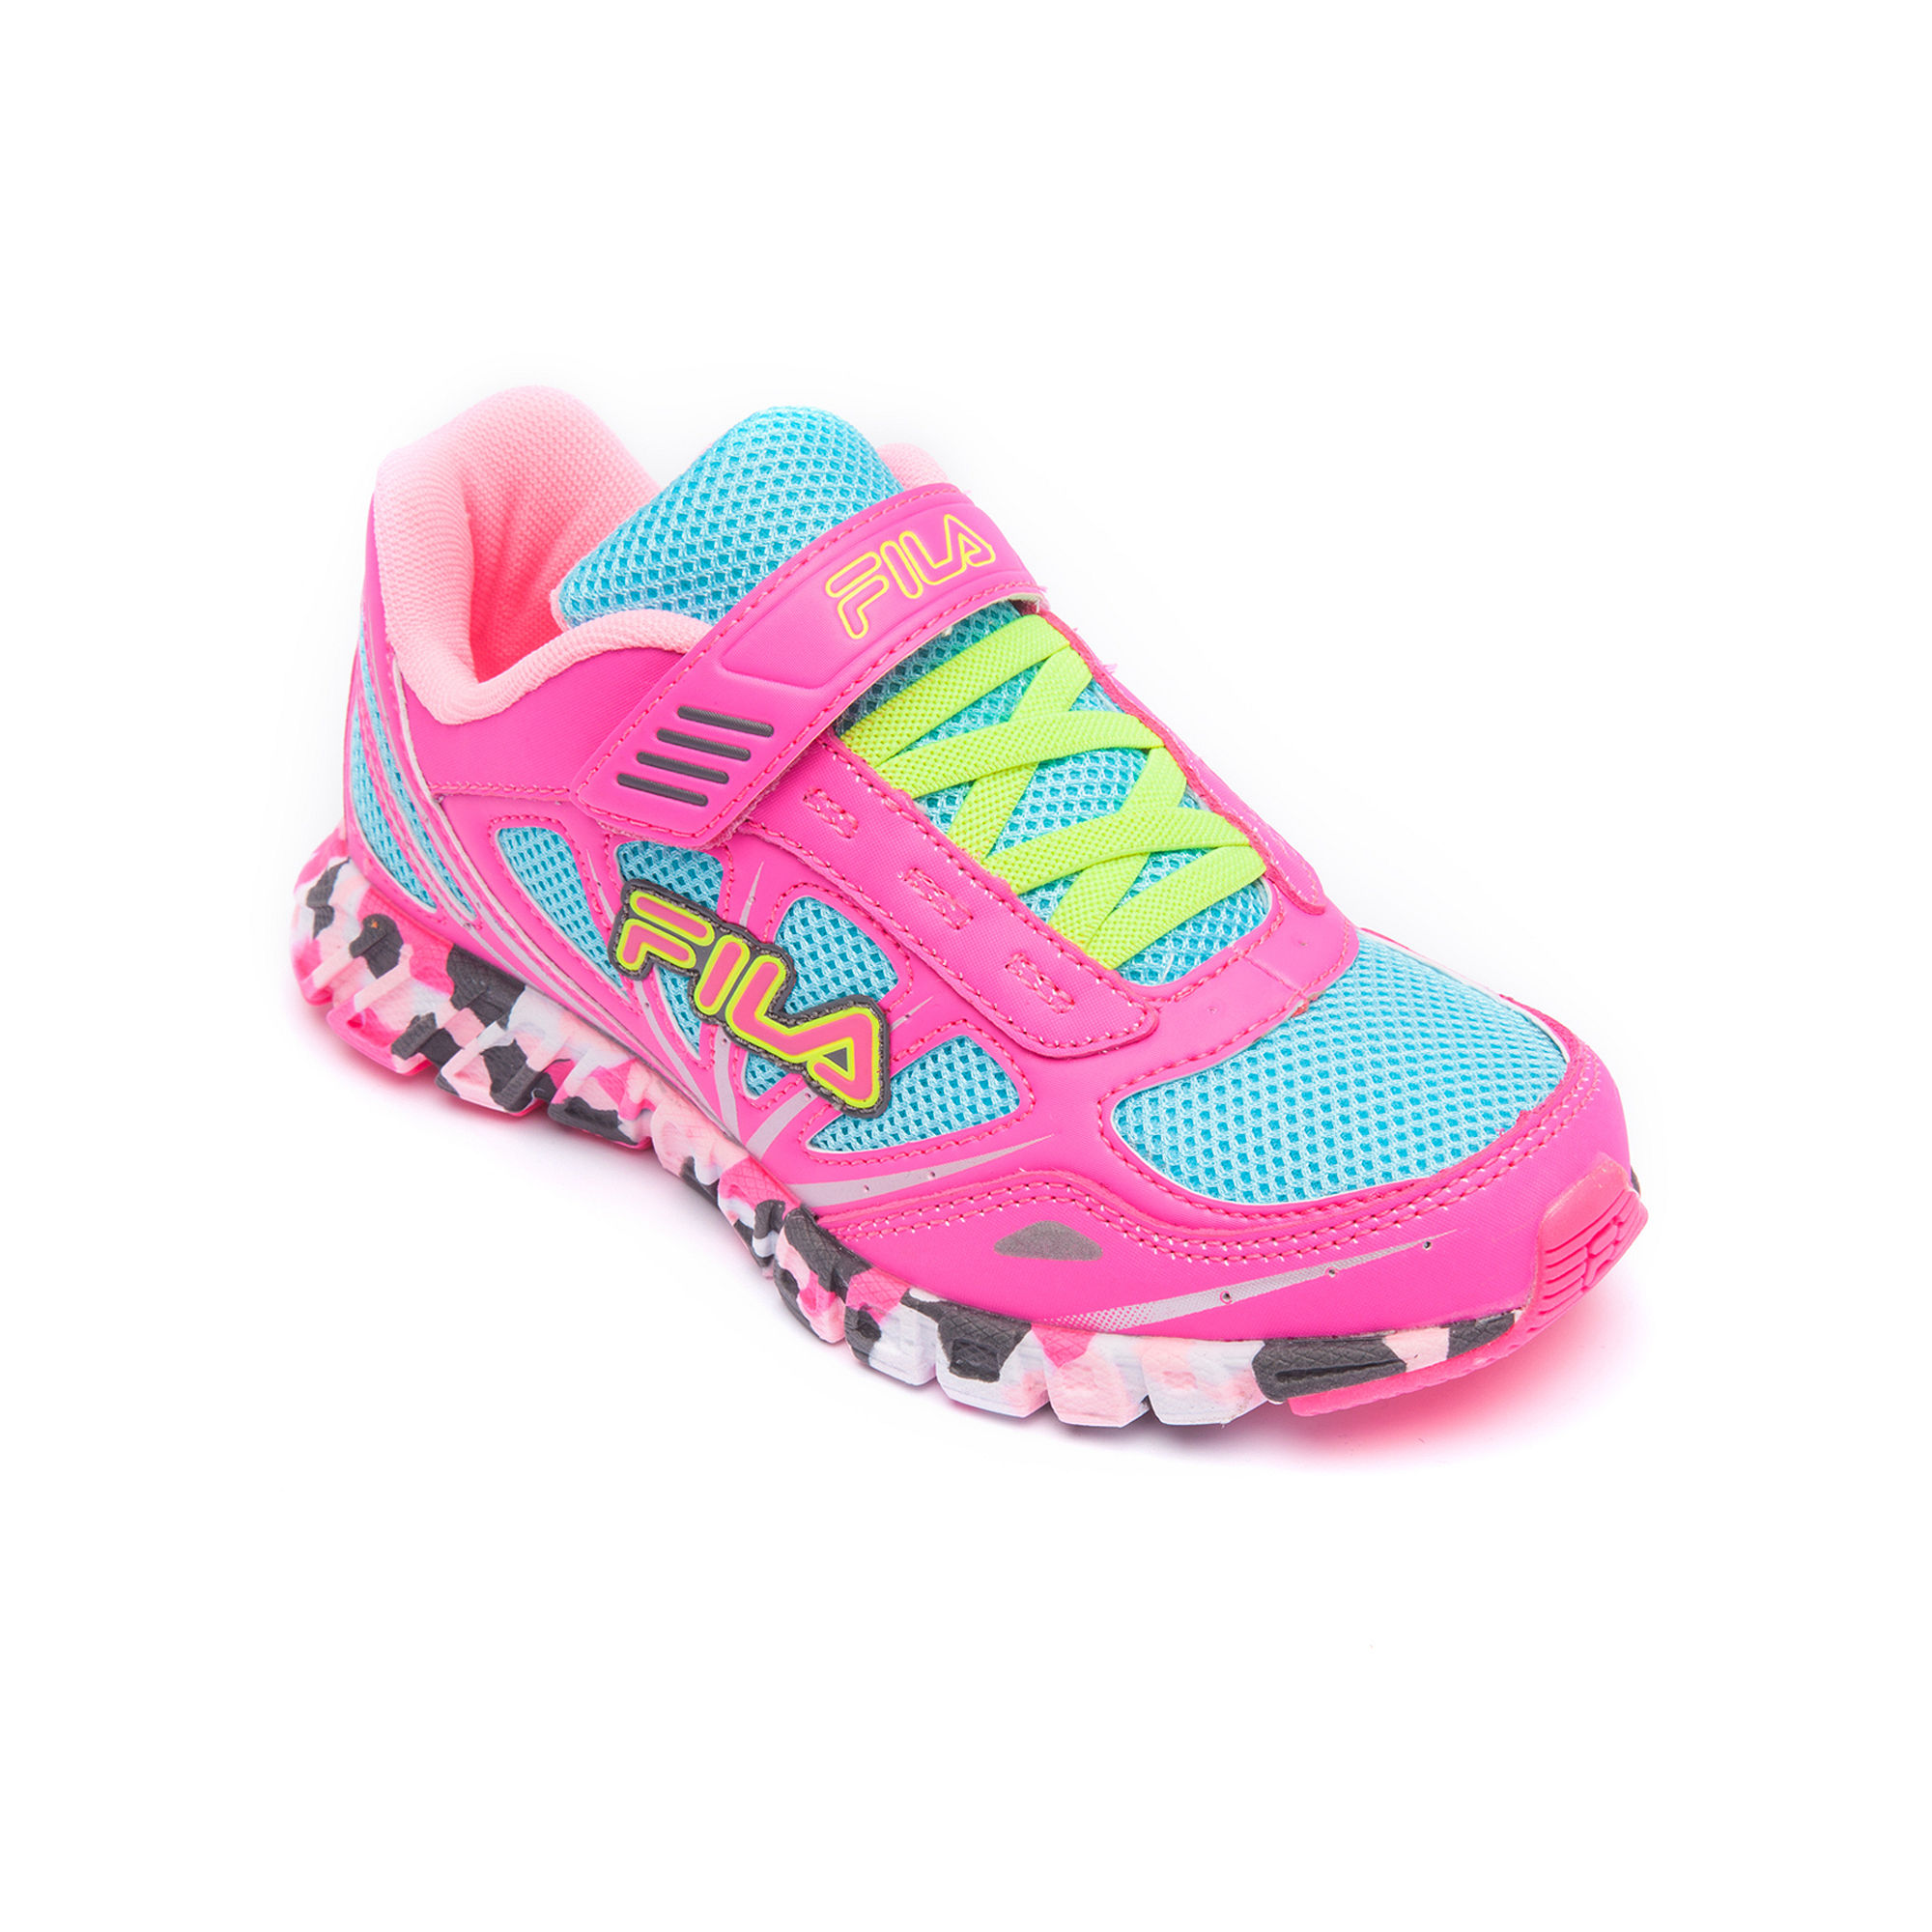 73c933ed9c8d UPC 731616749976 product image for Fila Volcanic Girls Running Shoes -  Little Kids